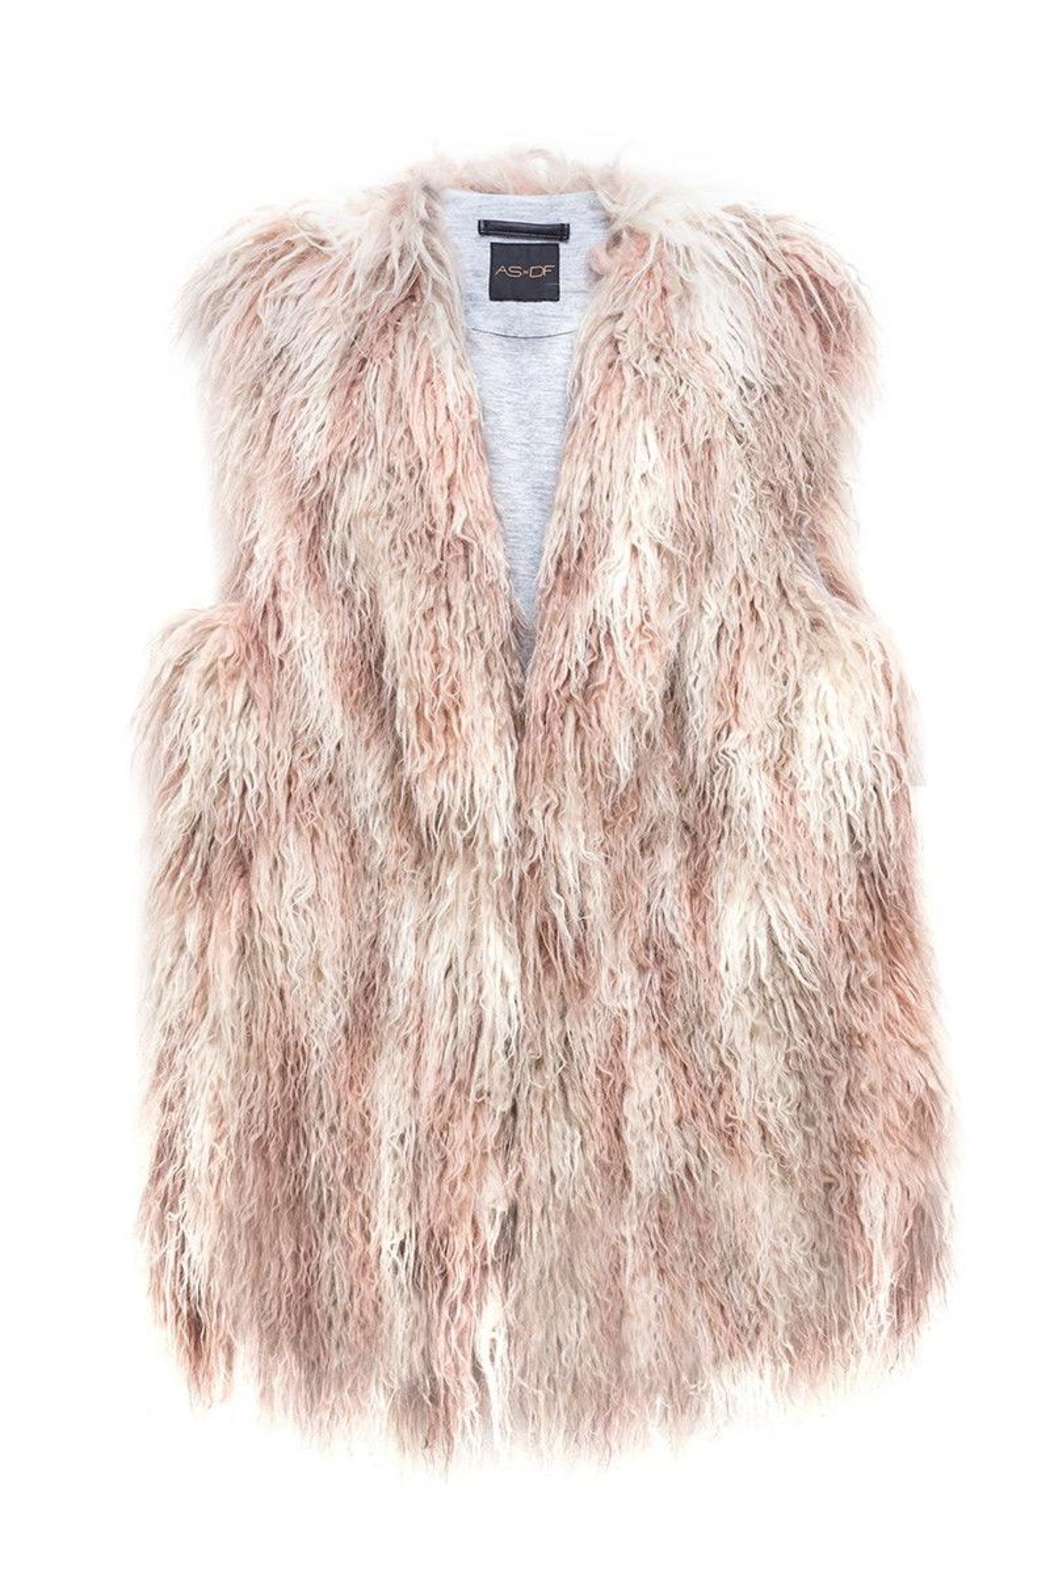 AS by DF Faux Fur Vest - Side Cropped Image